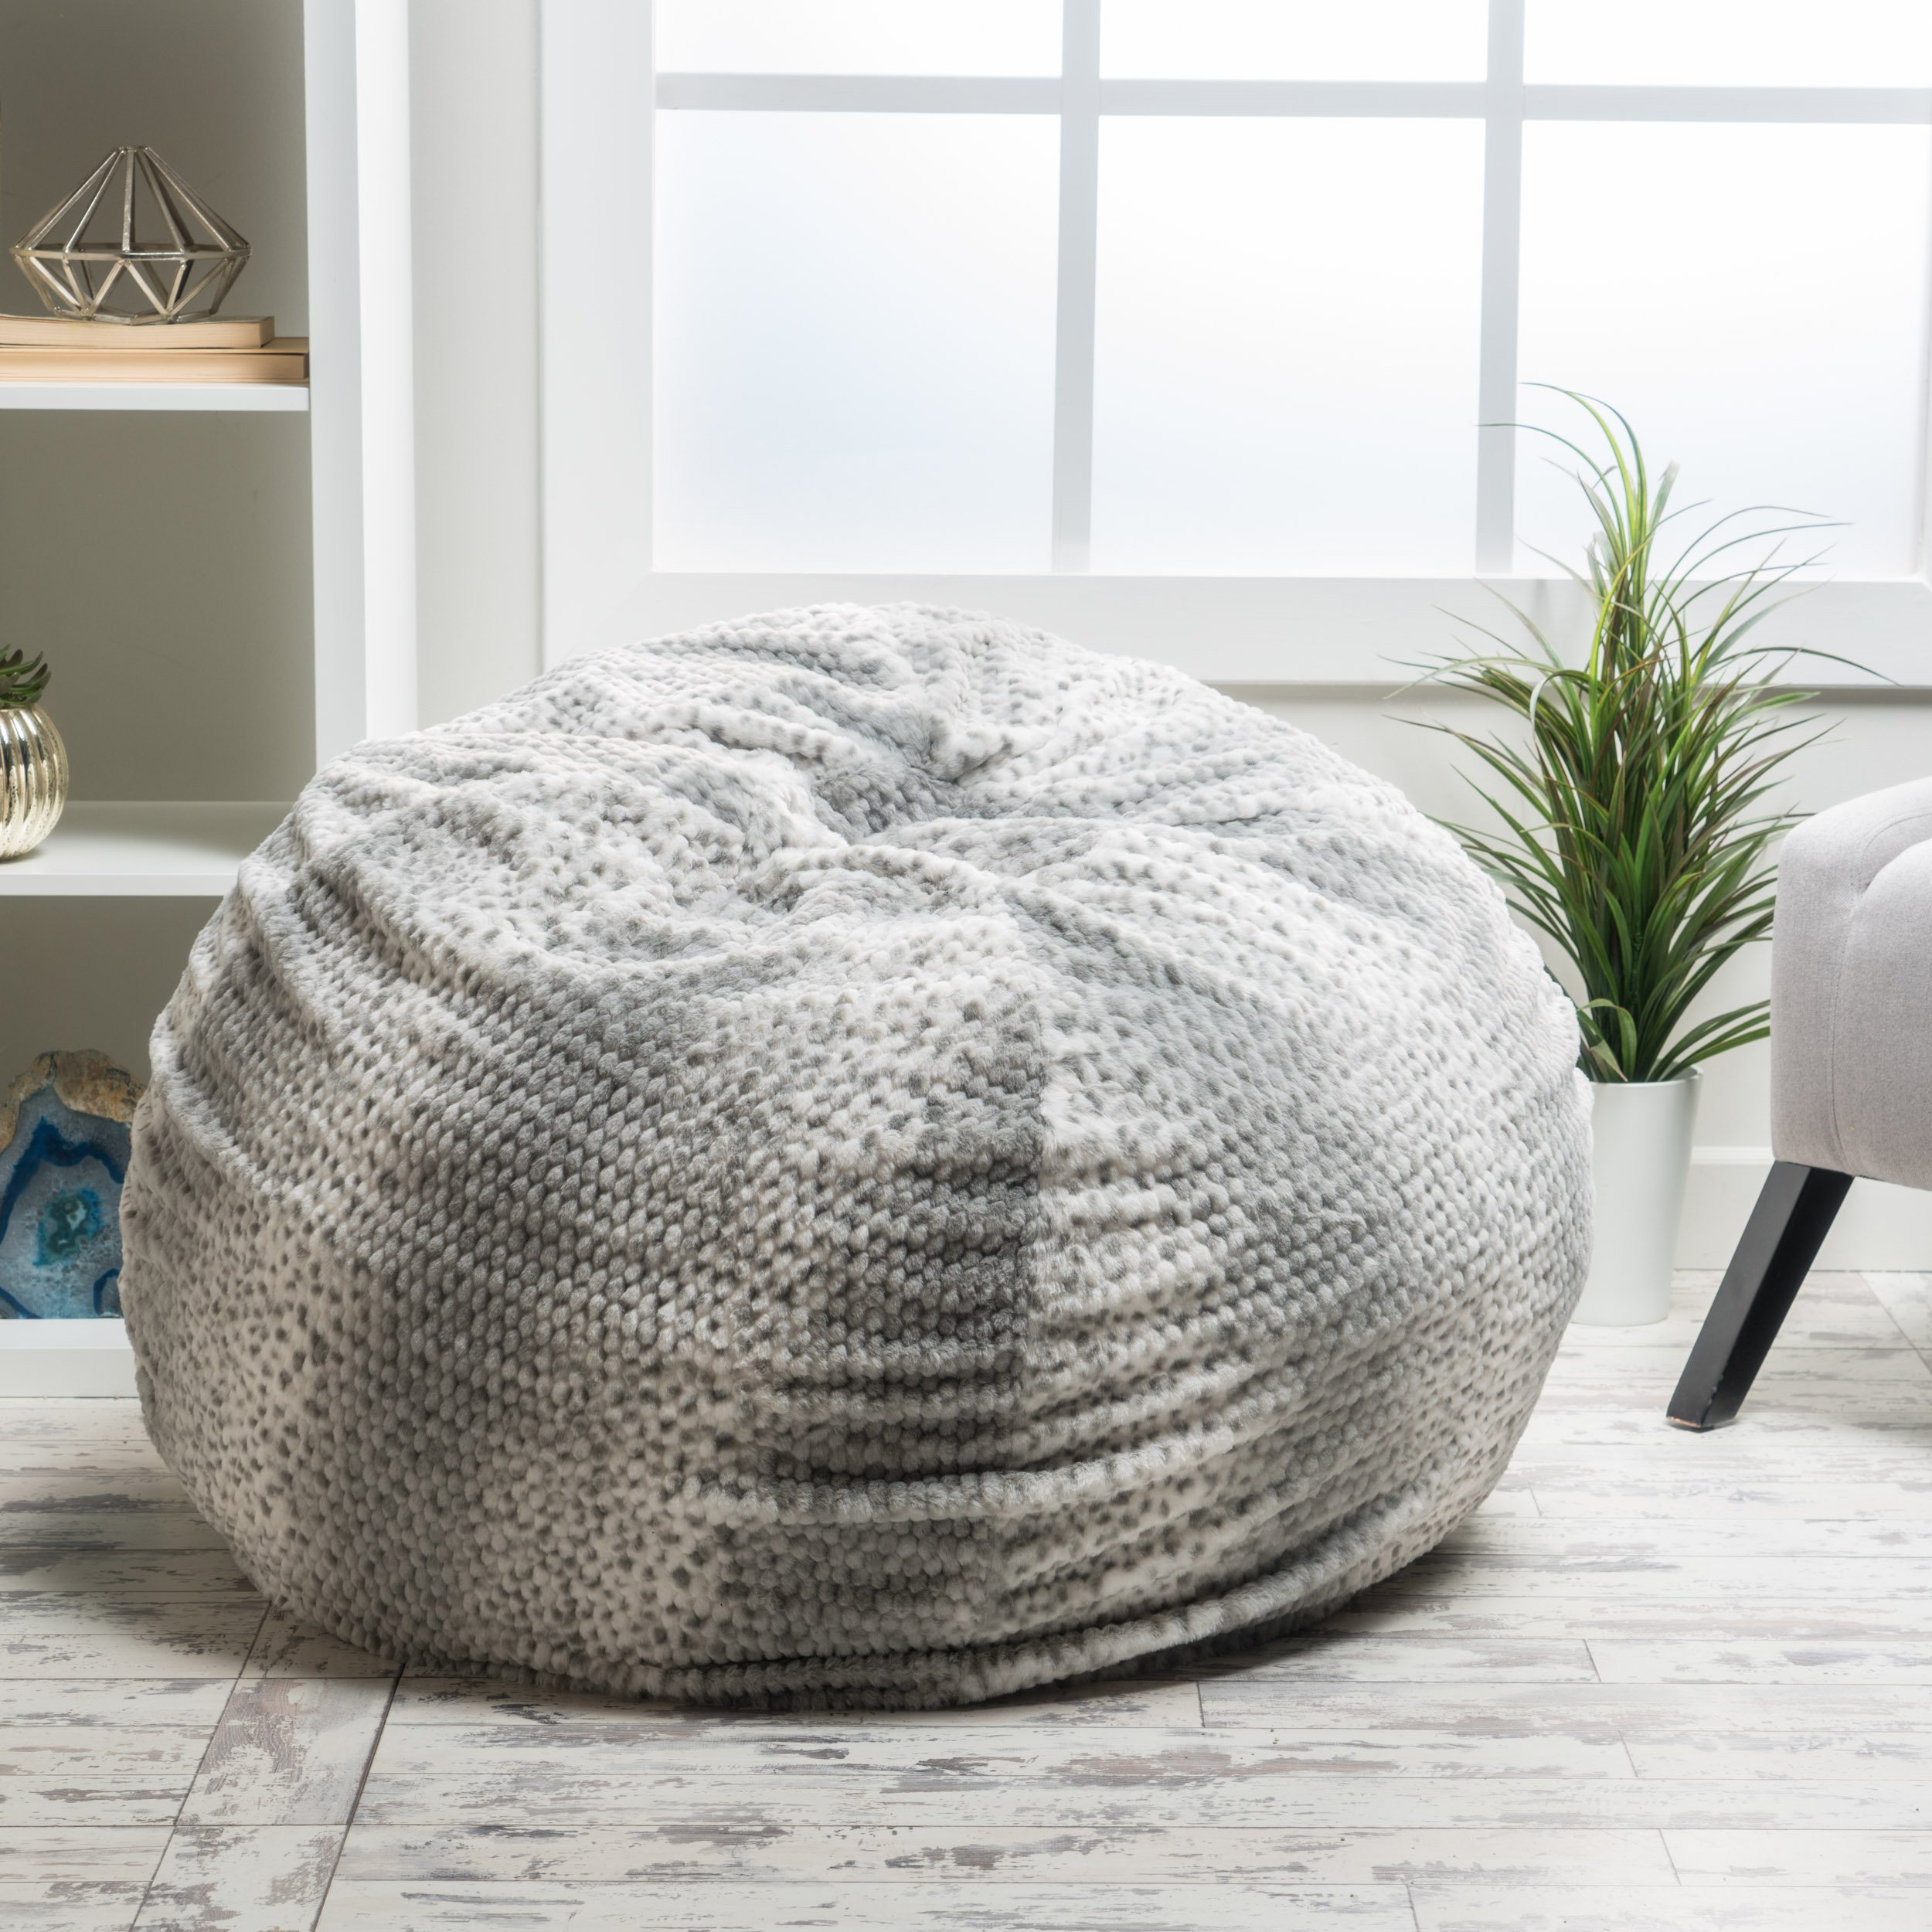 Meridian Bean Bag Chair | Plush Faux Fur Chair | Comfortable and Fun Beanbag for the Whole Family| Non-Spill Memory Foam Filling (Silver Dusk)